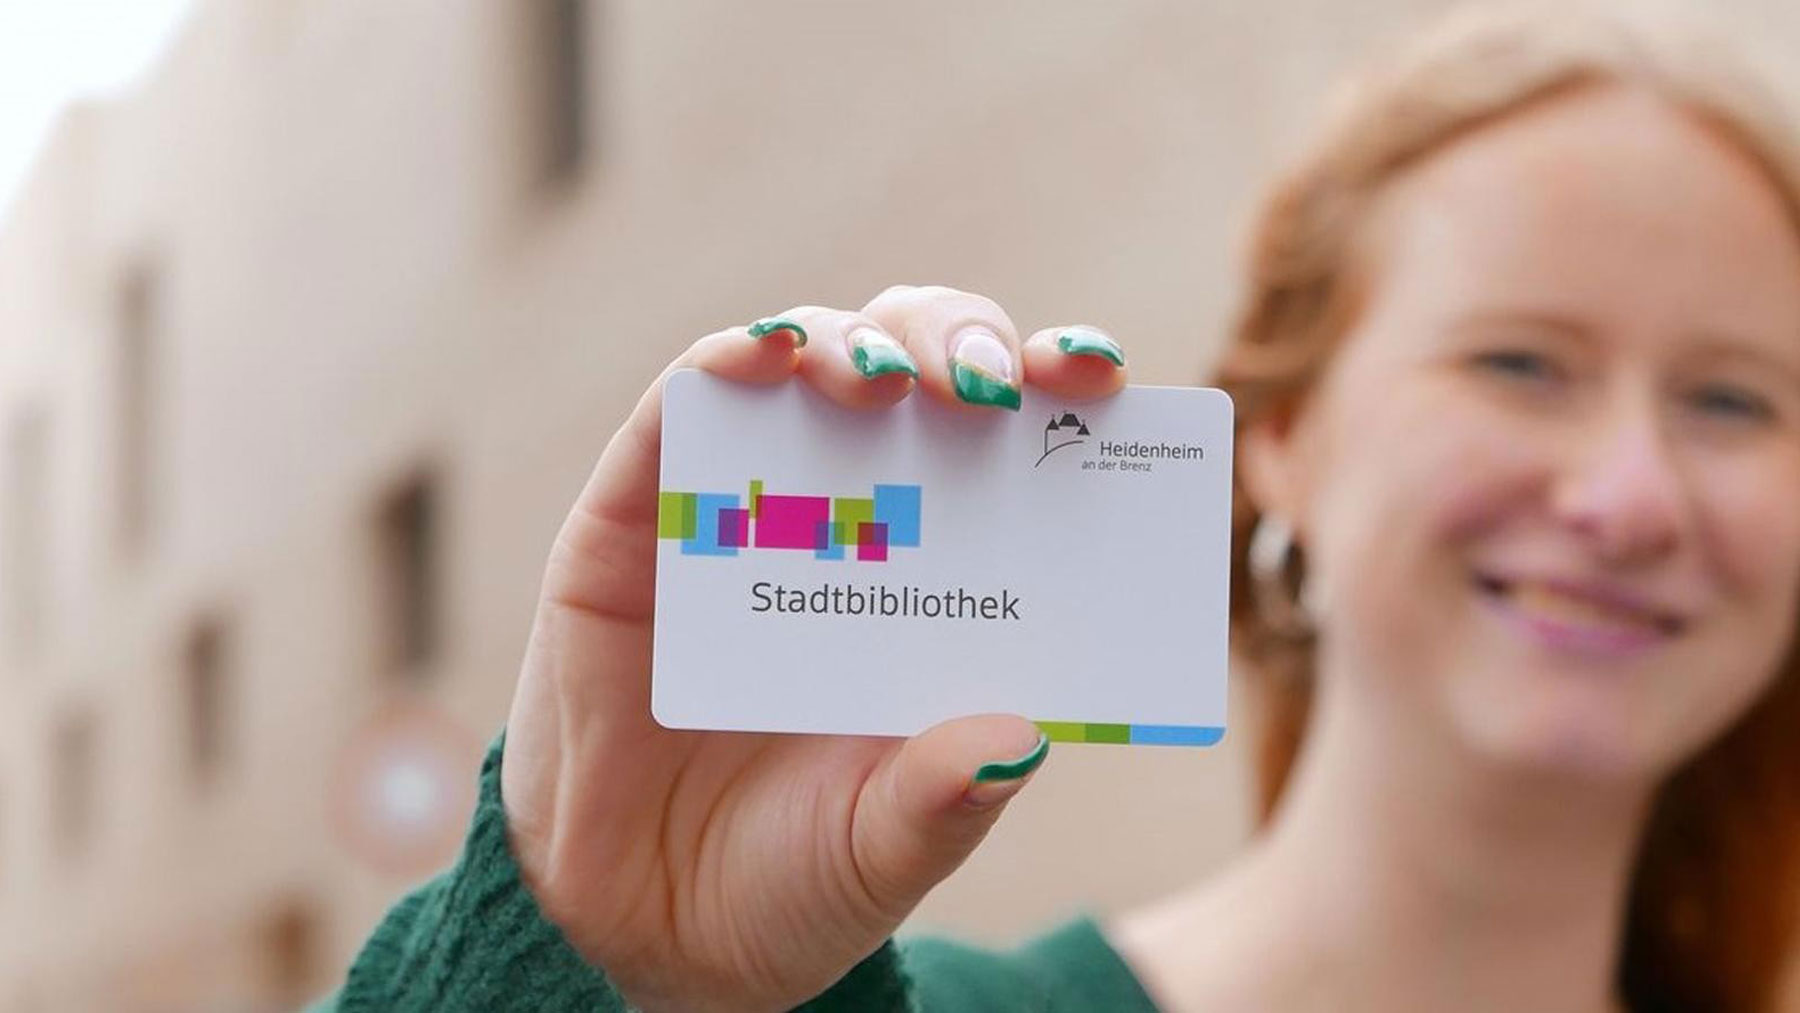 Woman holding a membership card of the library of the city Heidenheim